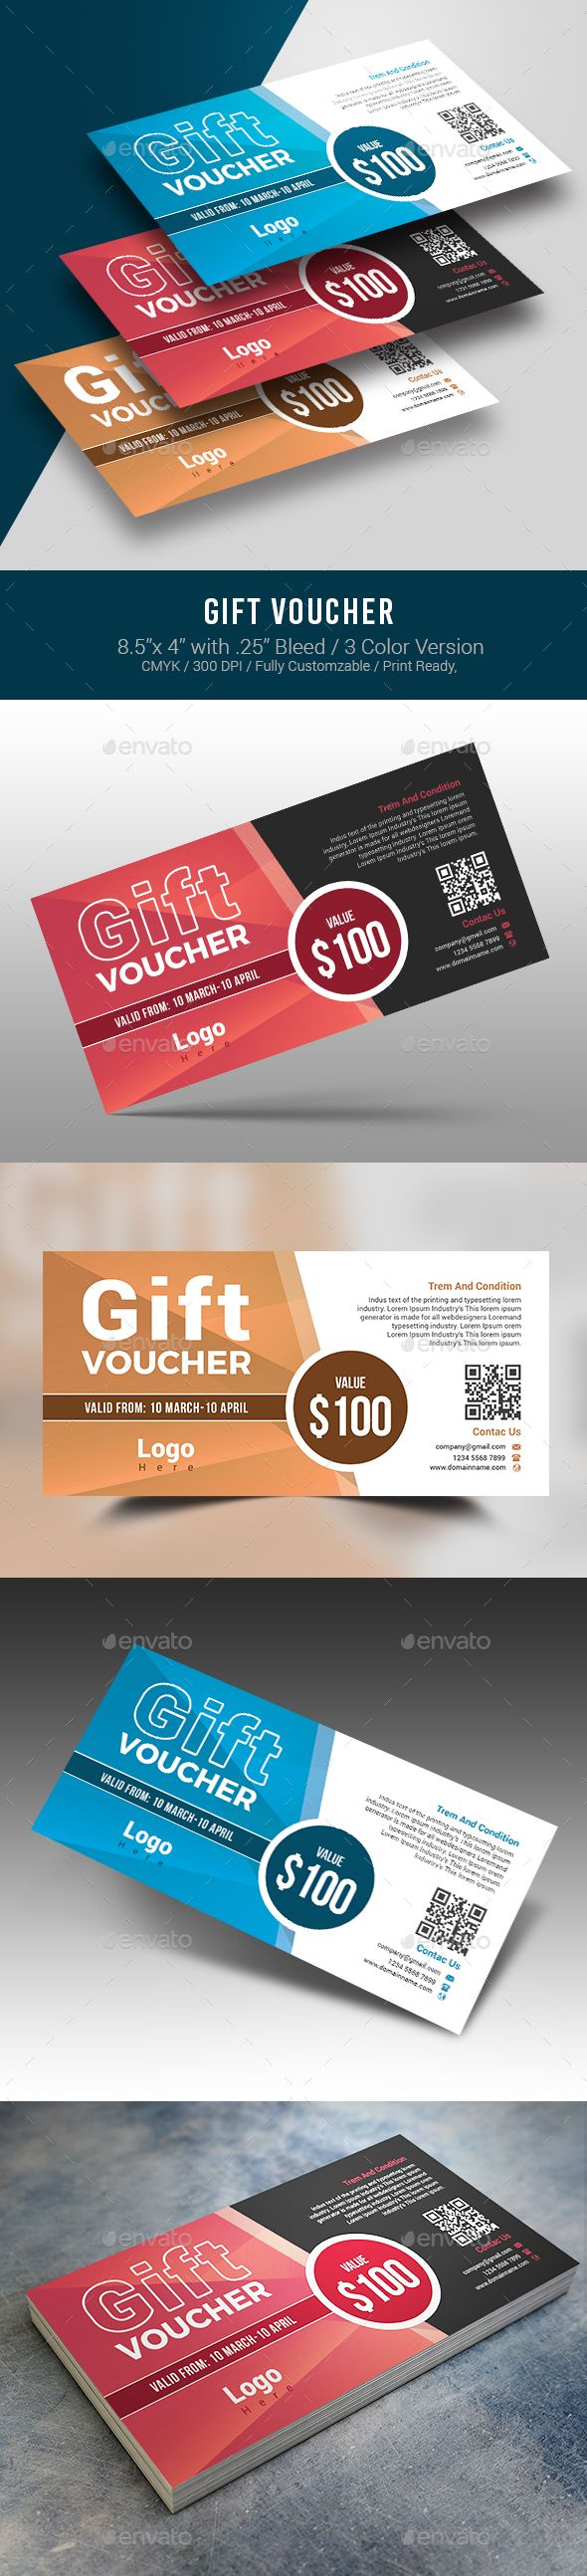 Best Gift Voucher Images On   Gift Cards Gift